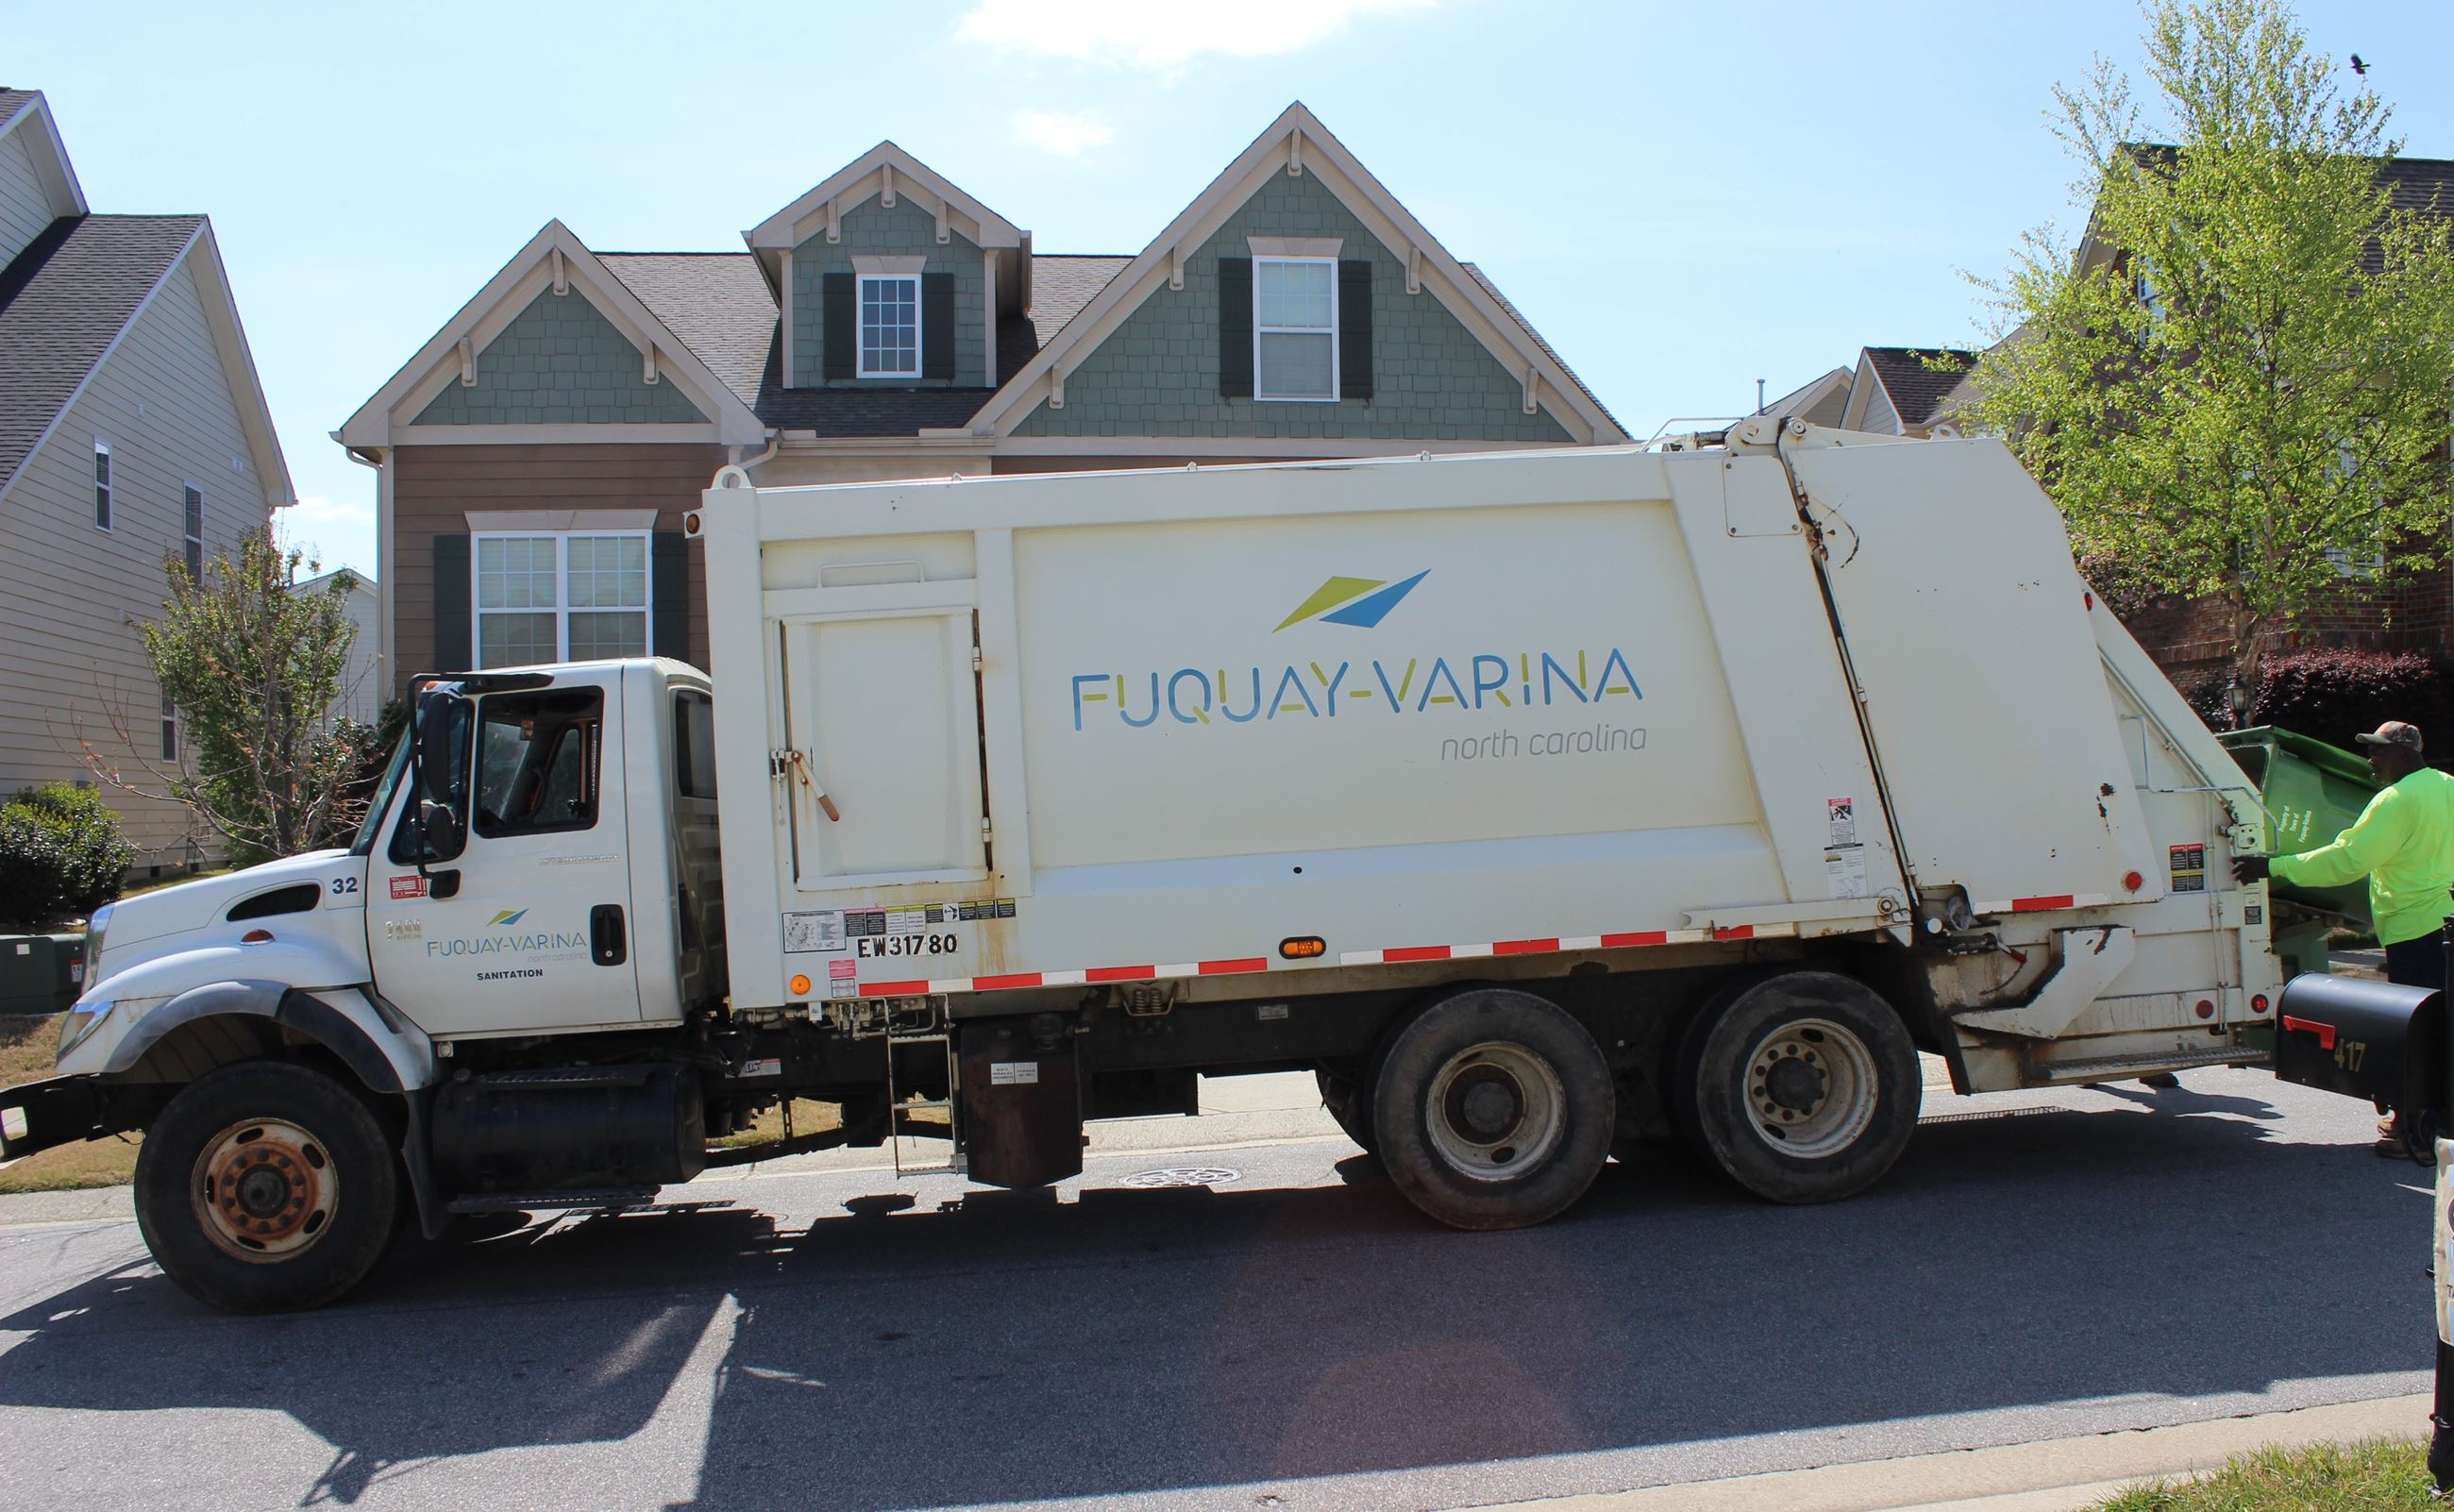 Town of Fuquay-Varina garbage truck